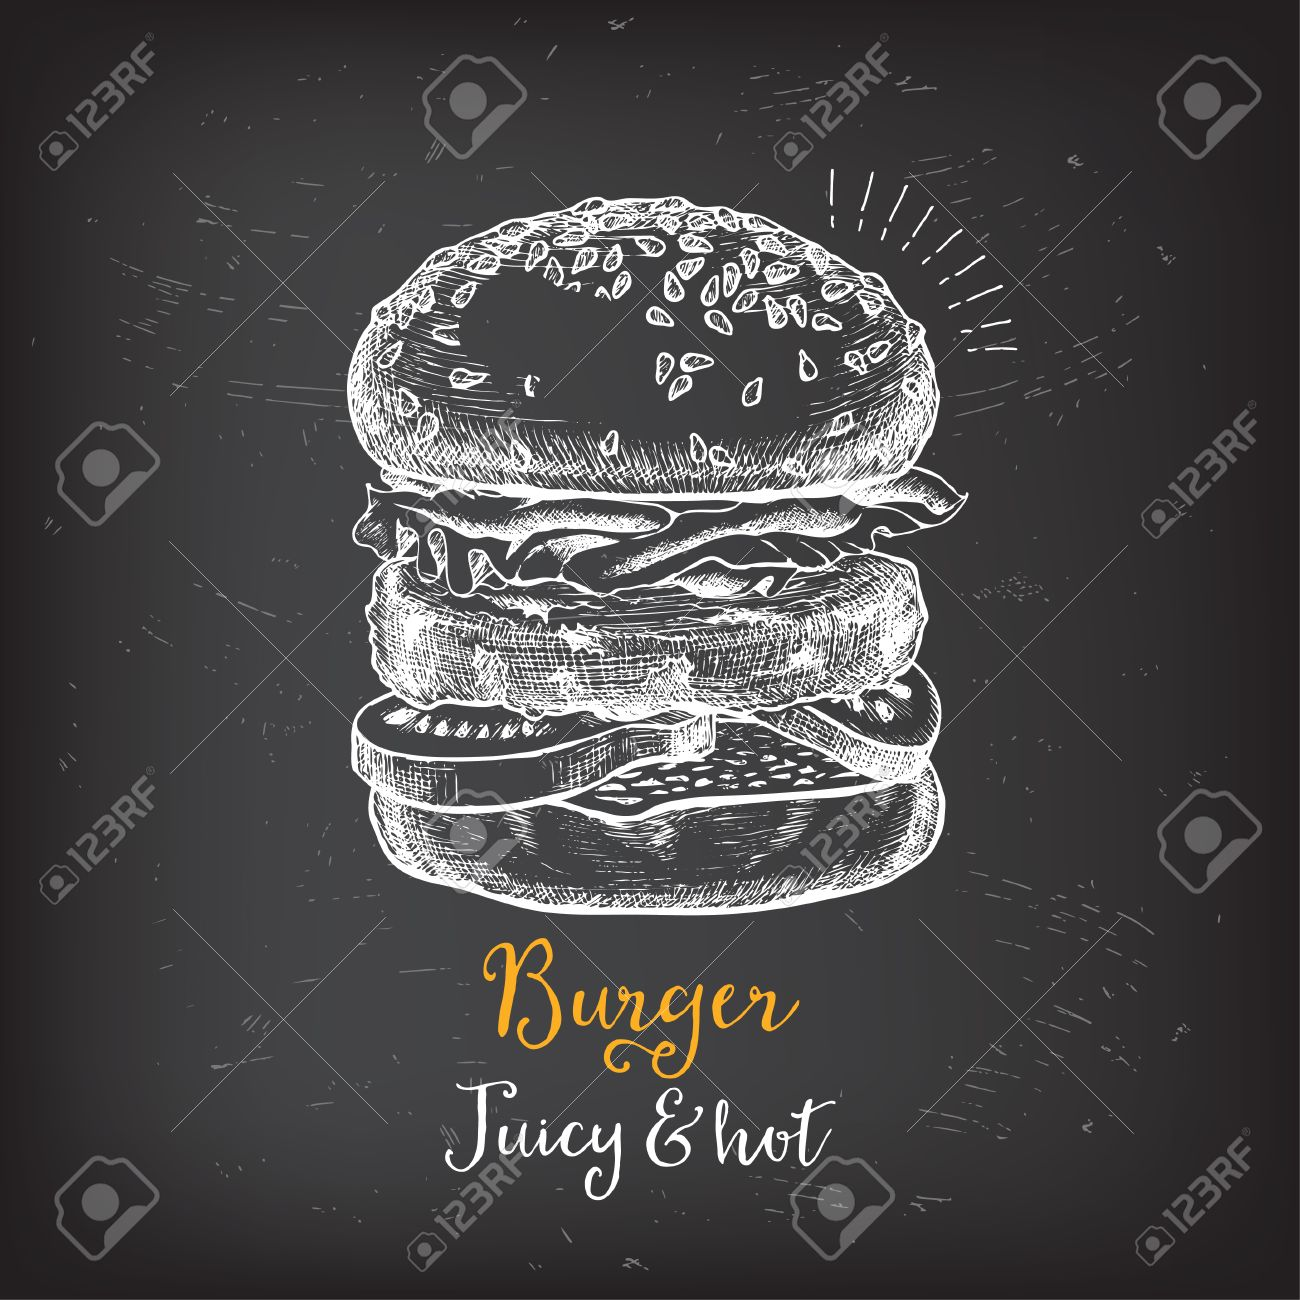 For restaurant pictures graphics illustrations clipart photos - Burger Menu Restaurant Badges Food Design Icons With Hand Drawing Elements Graphic Labels